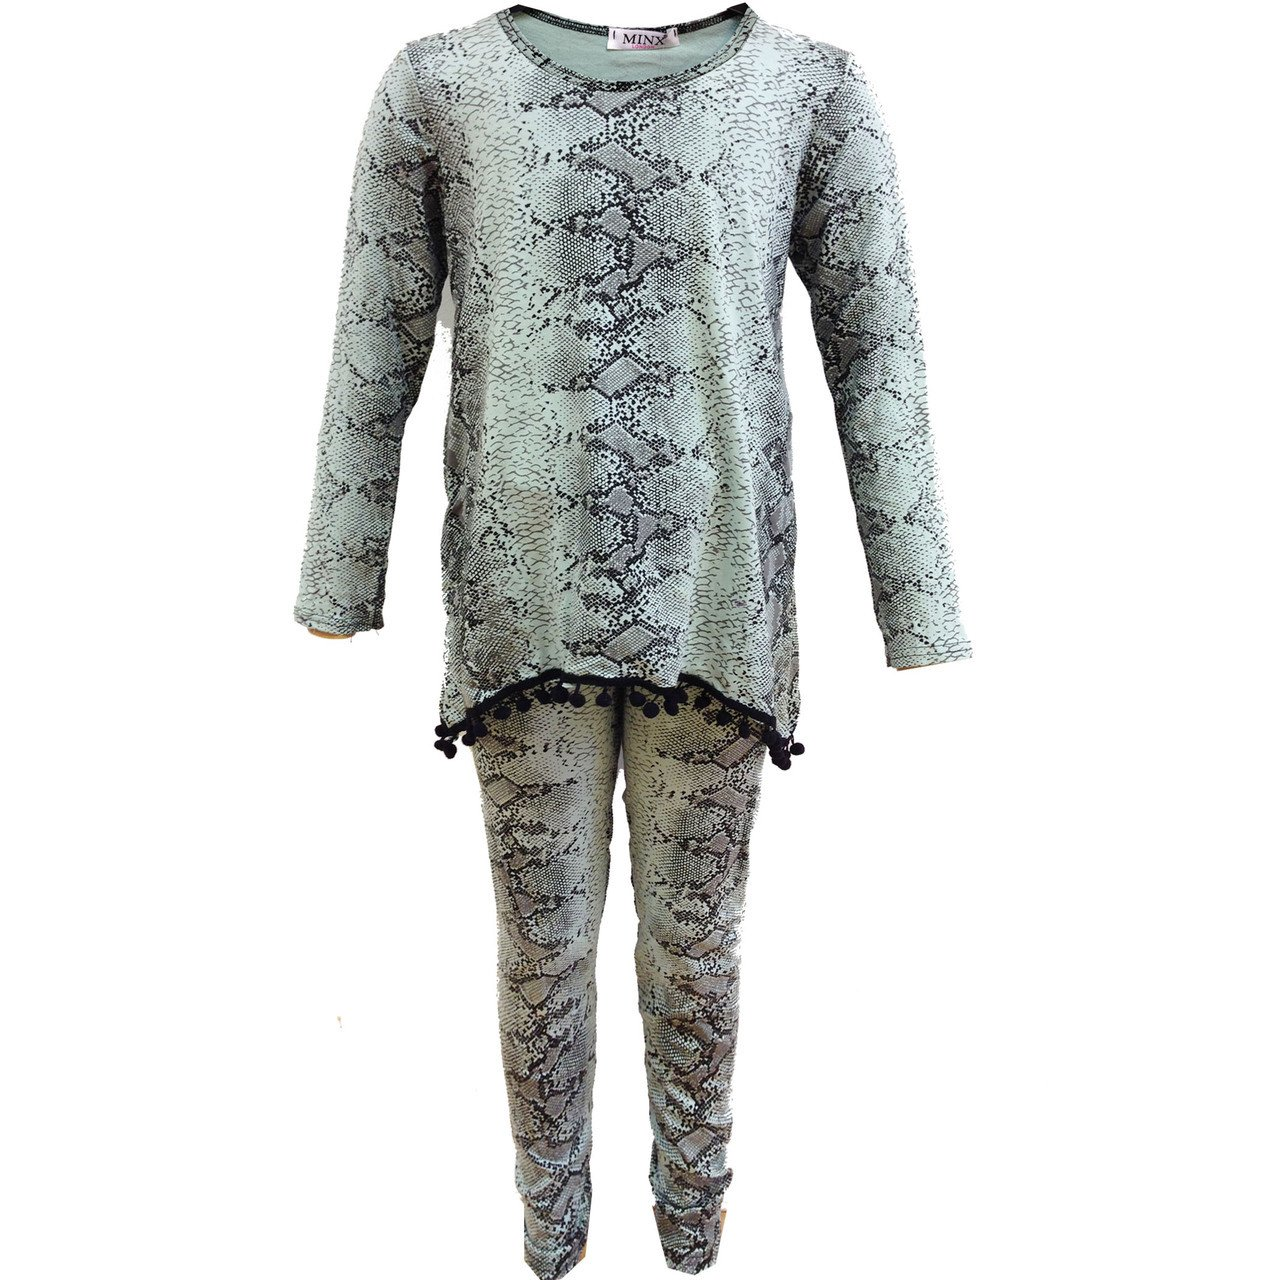 Fashion Oasis Girls Snake Print Pom Pom Tracksuit Loungewear 2 Piece Suit In Red, Black,Salmon, Yellow, Pink & Mint Green Ages 2-3, 3-4, 5-6, 7-8. 9-10. 11-12 & 13